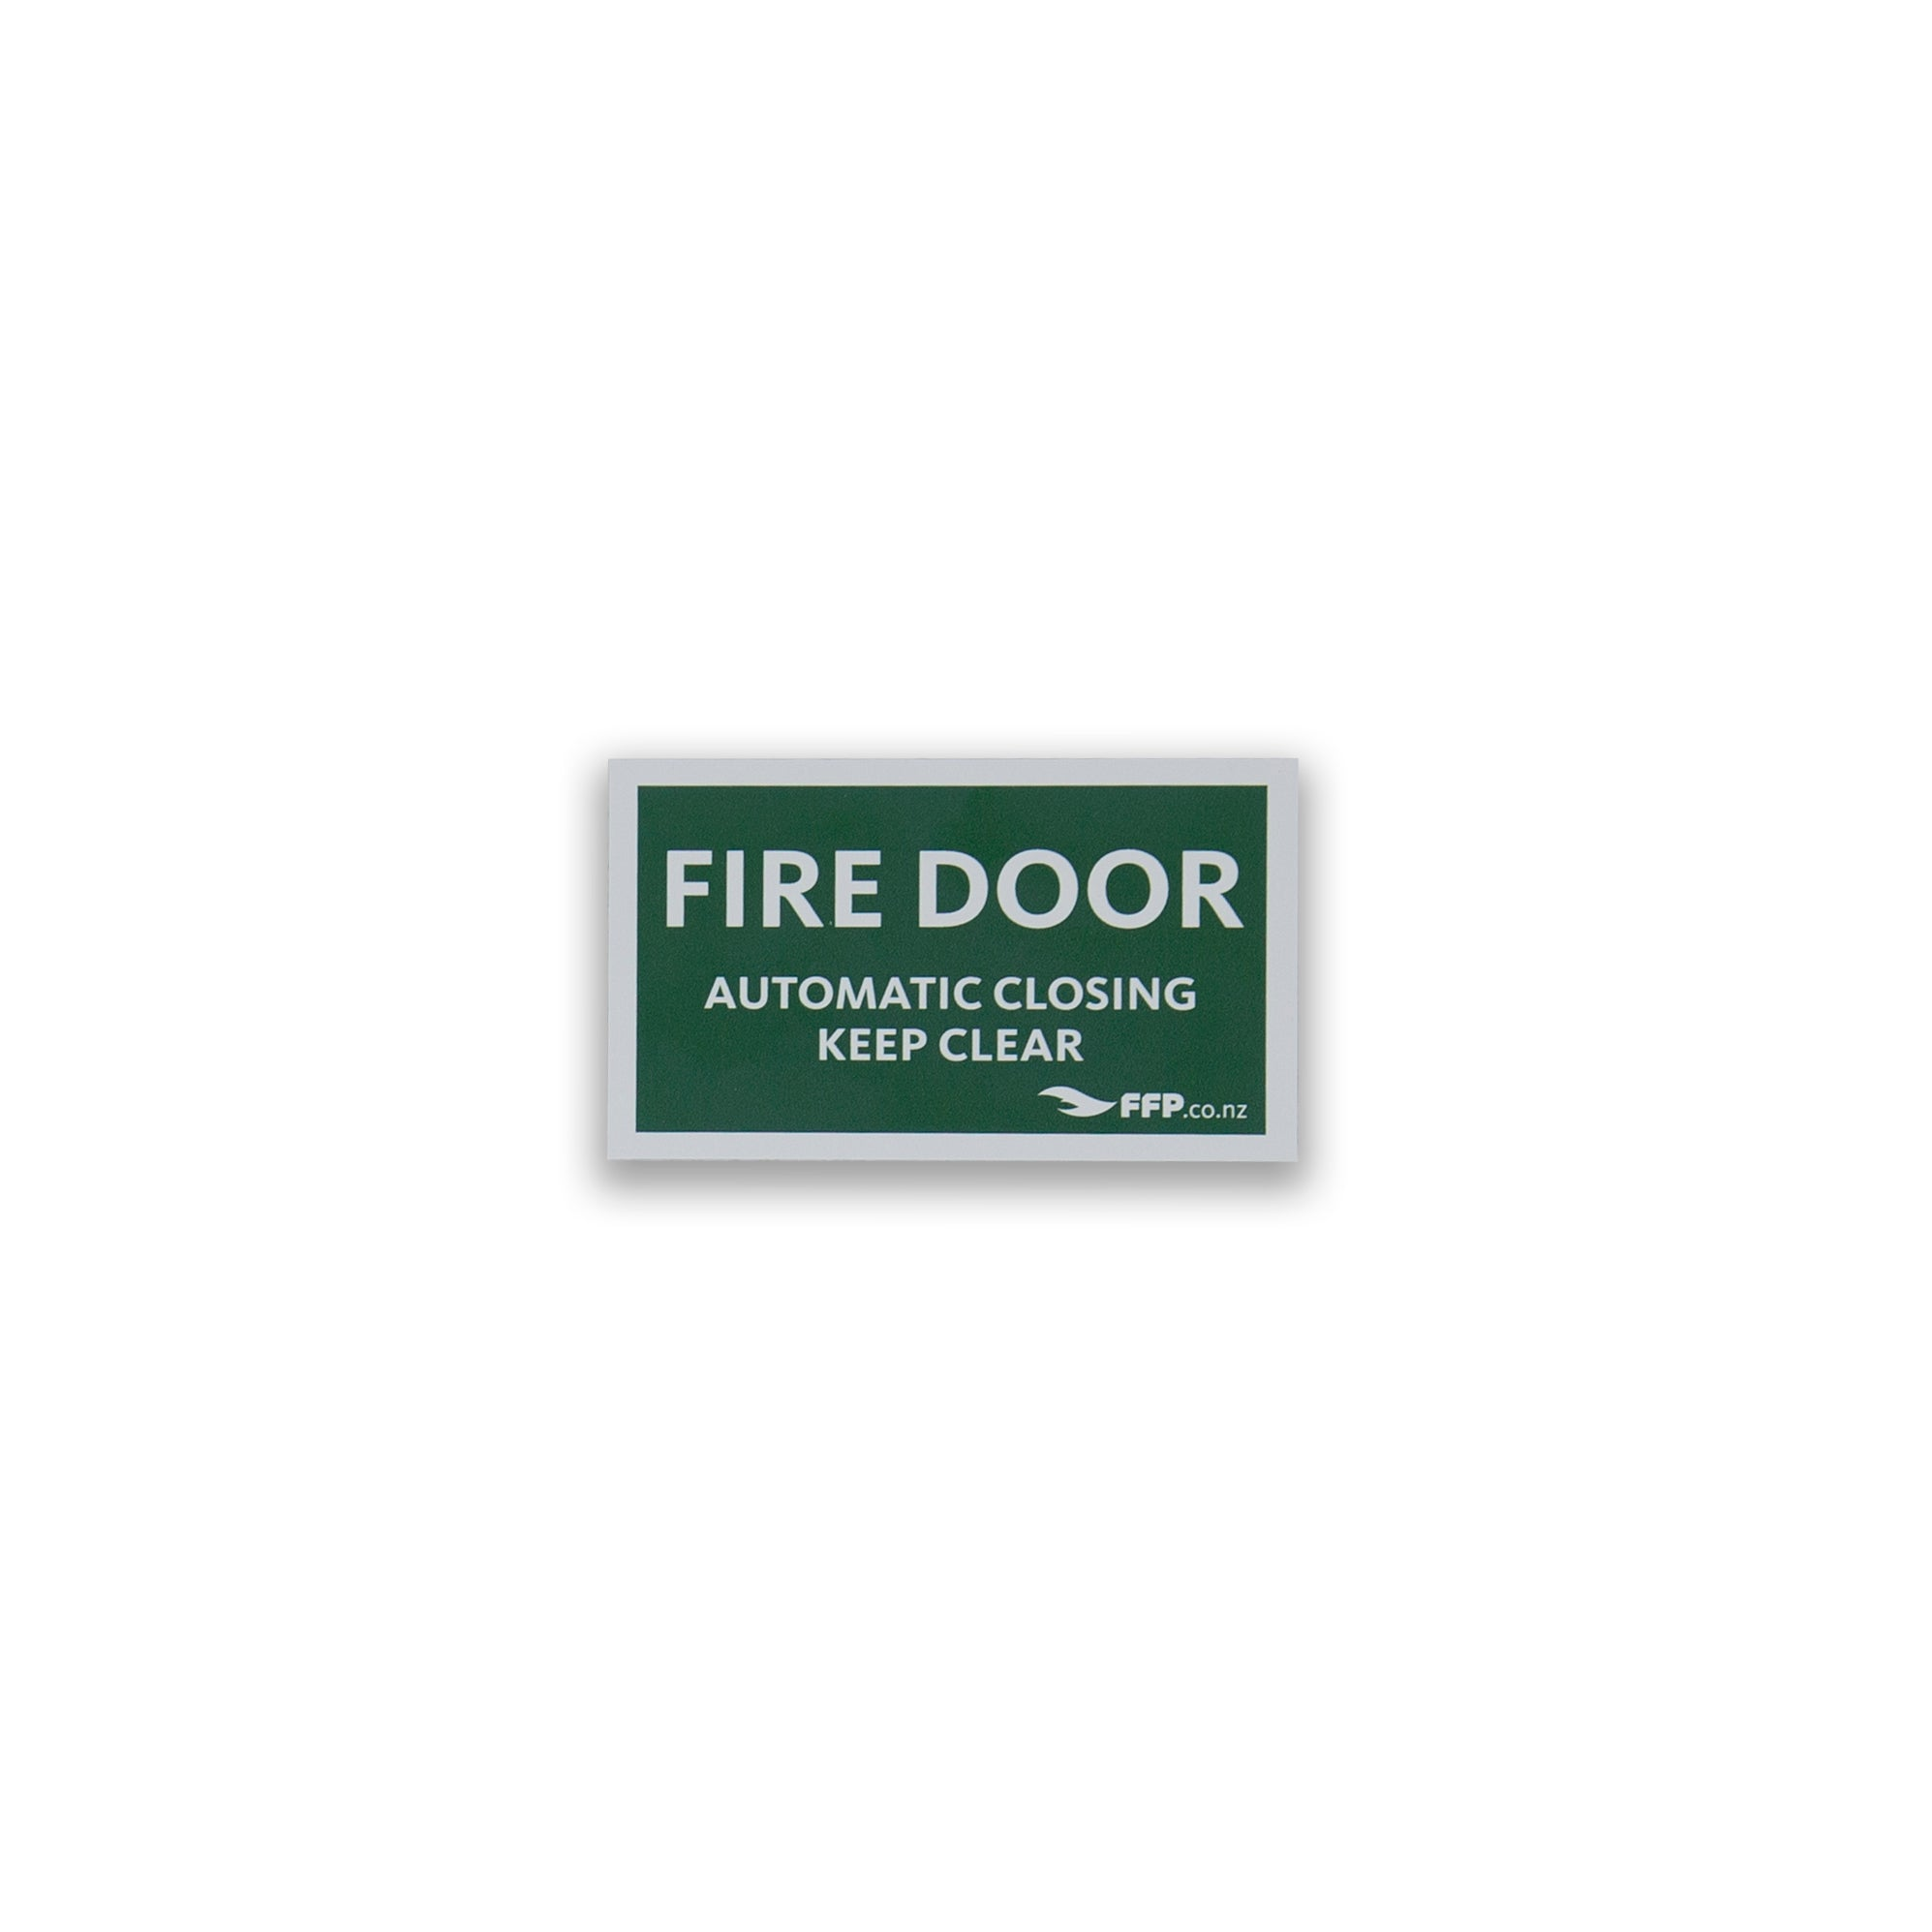 Fire Door - Automatic Closing - Keep Clear Sign